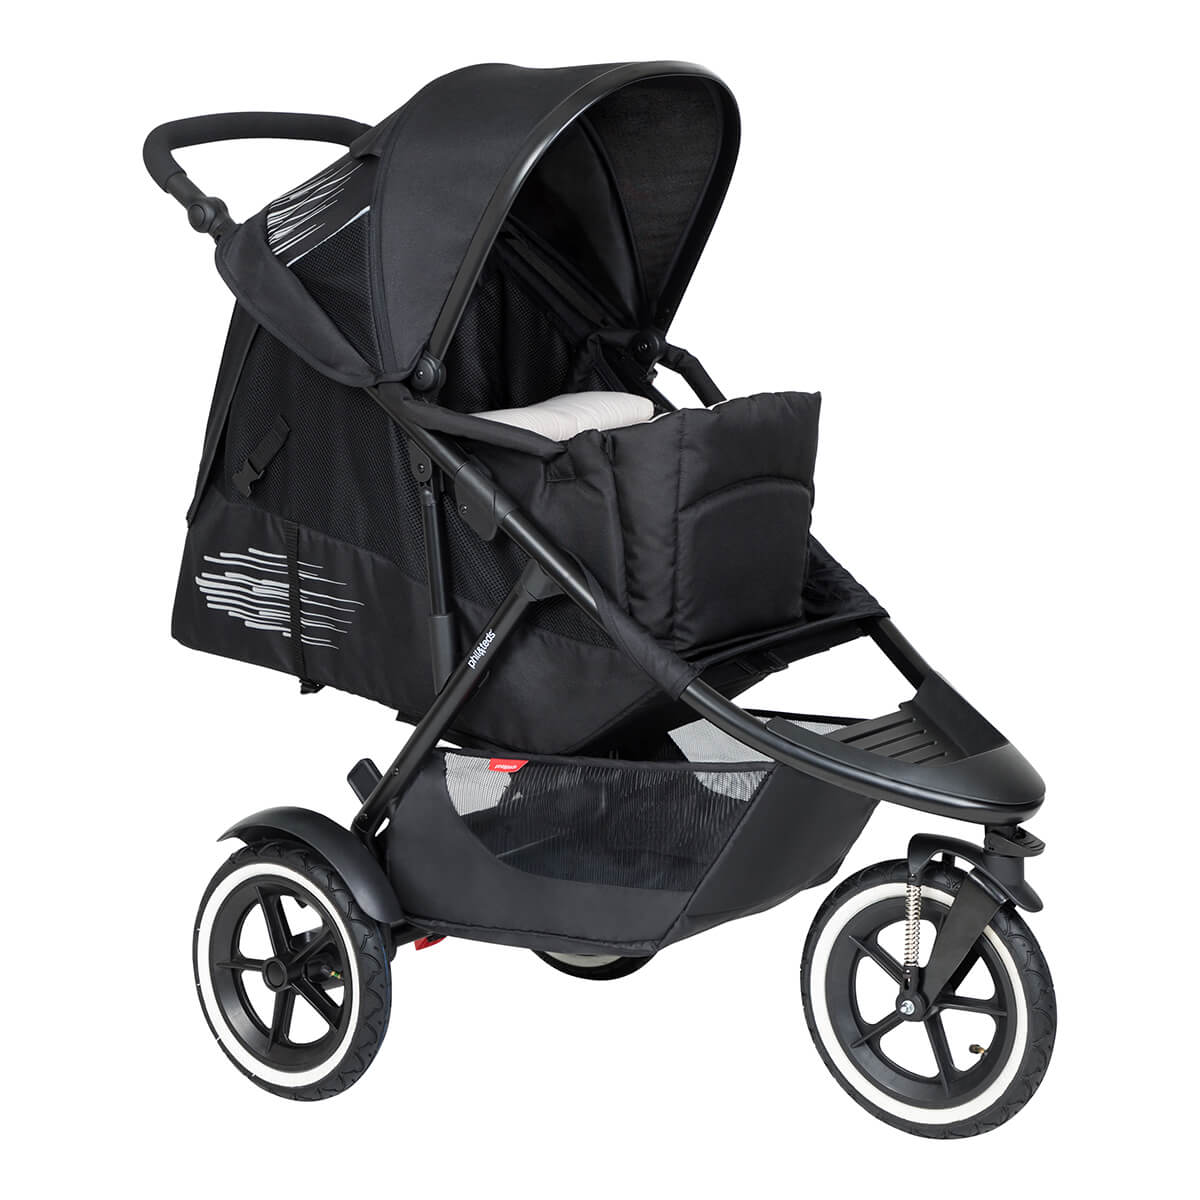 https://cdn.accentuate.io/4384002474081/19793938874538/philteds-sport-buggy-with-cocoon-full-recline-v1626147560773.jpg?1200x1200